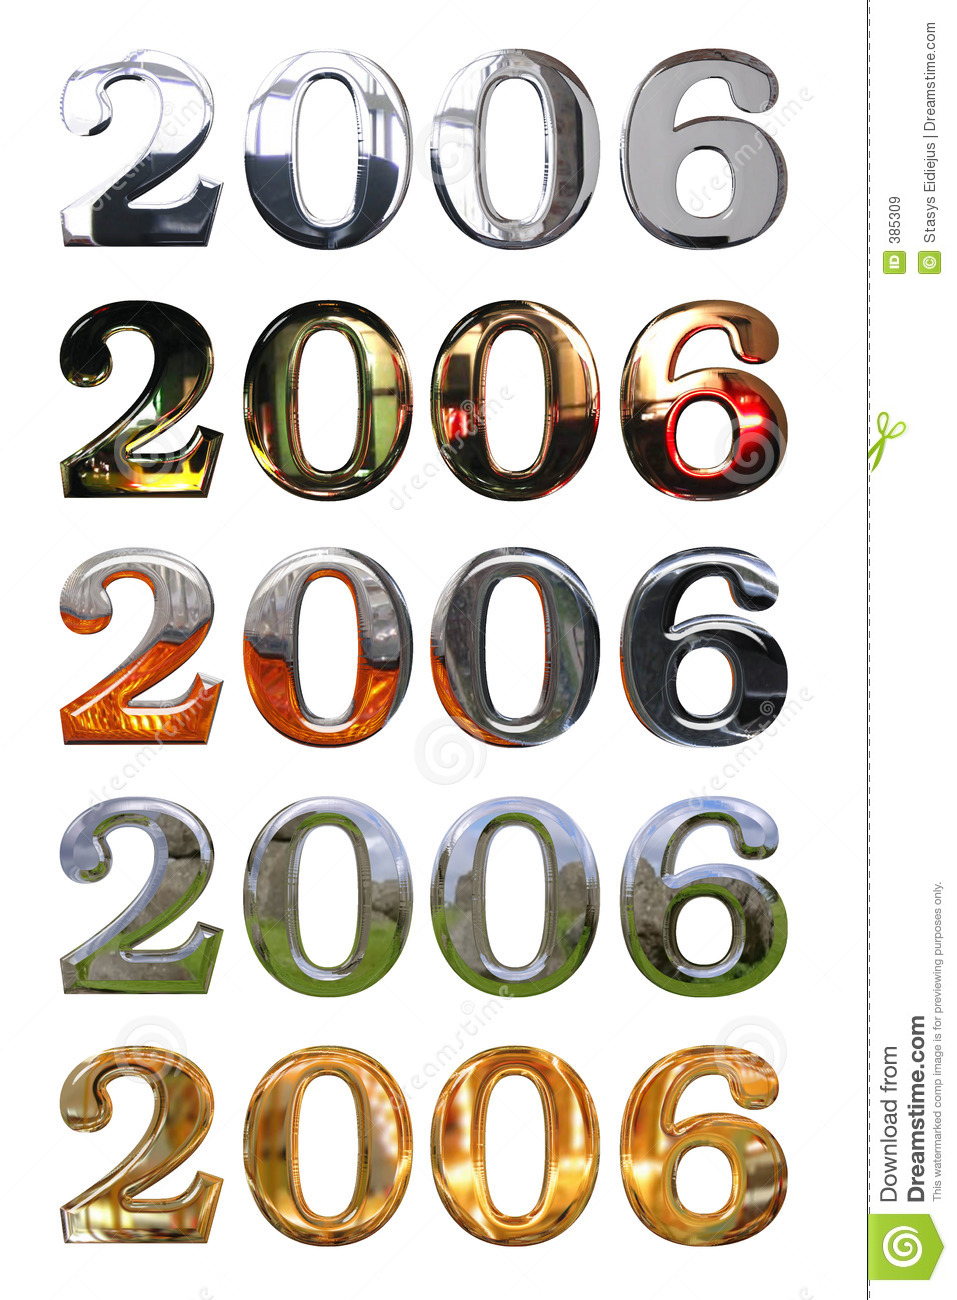 year 2006 royalty free stock images